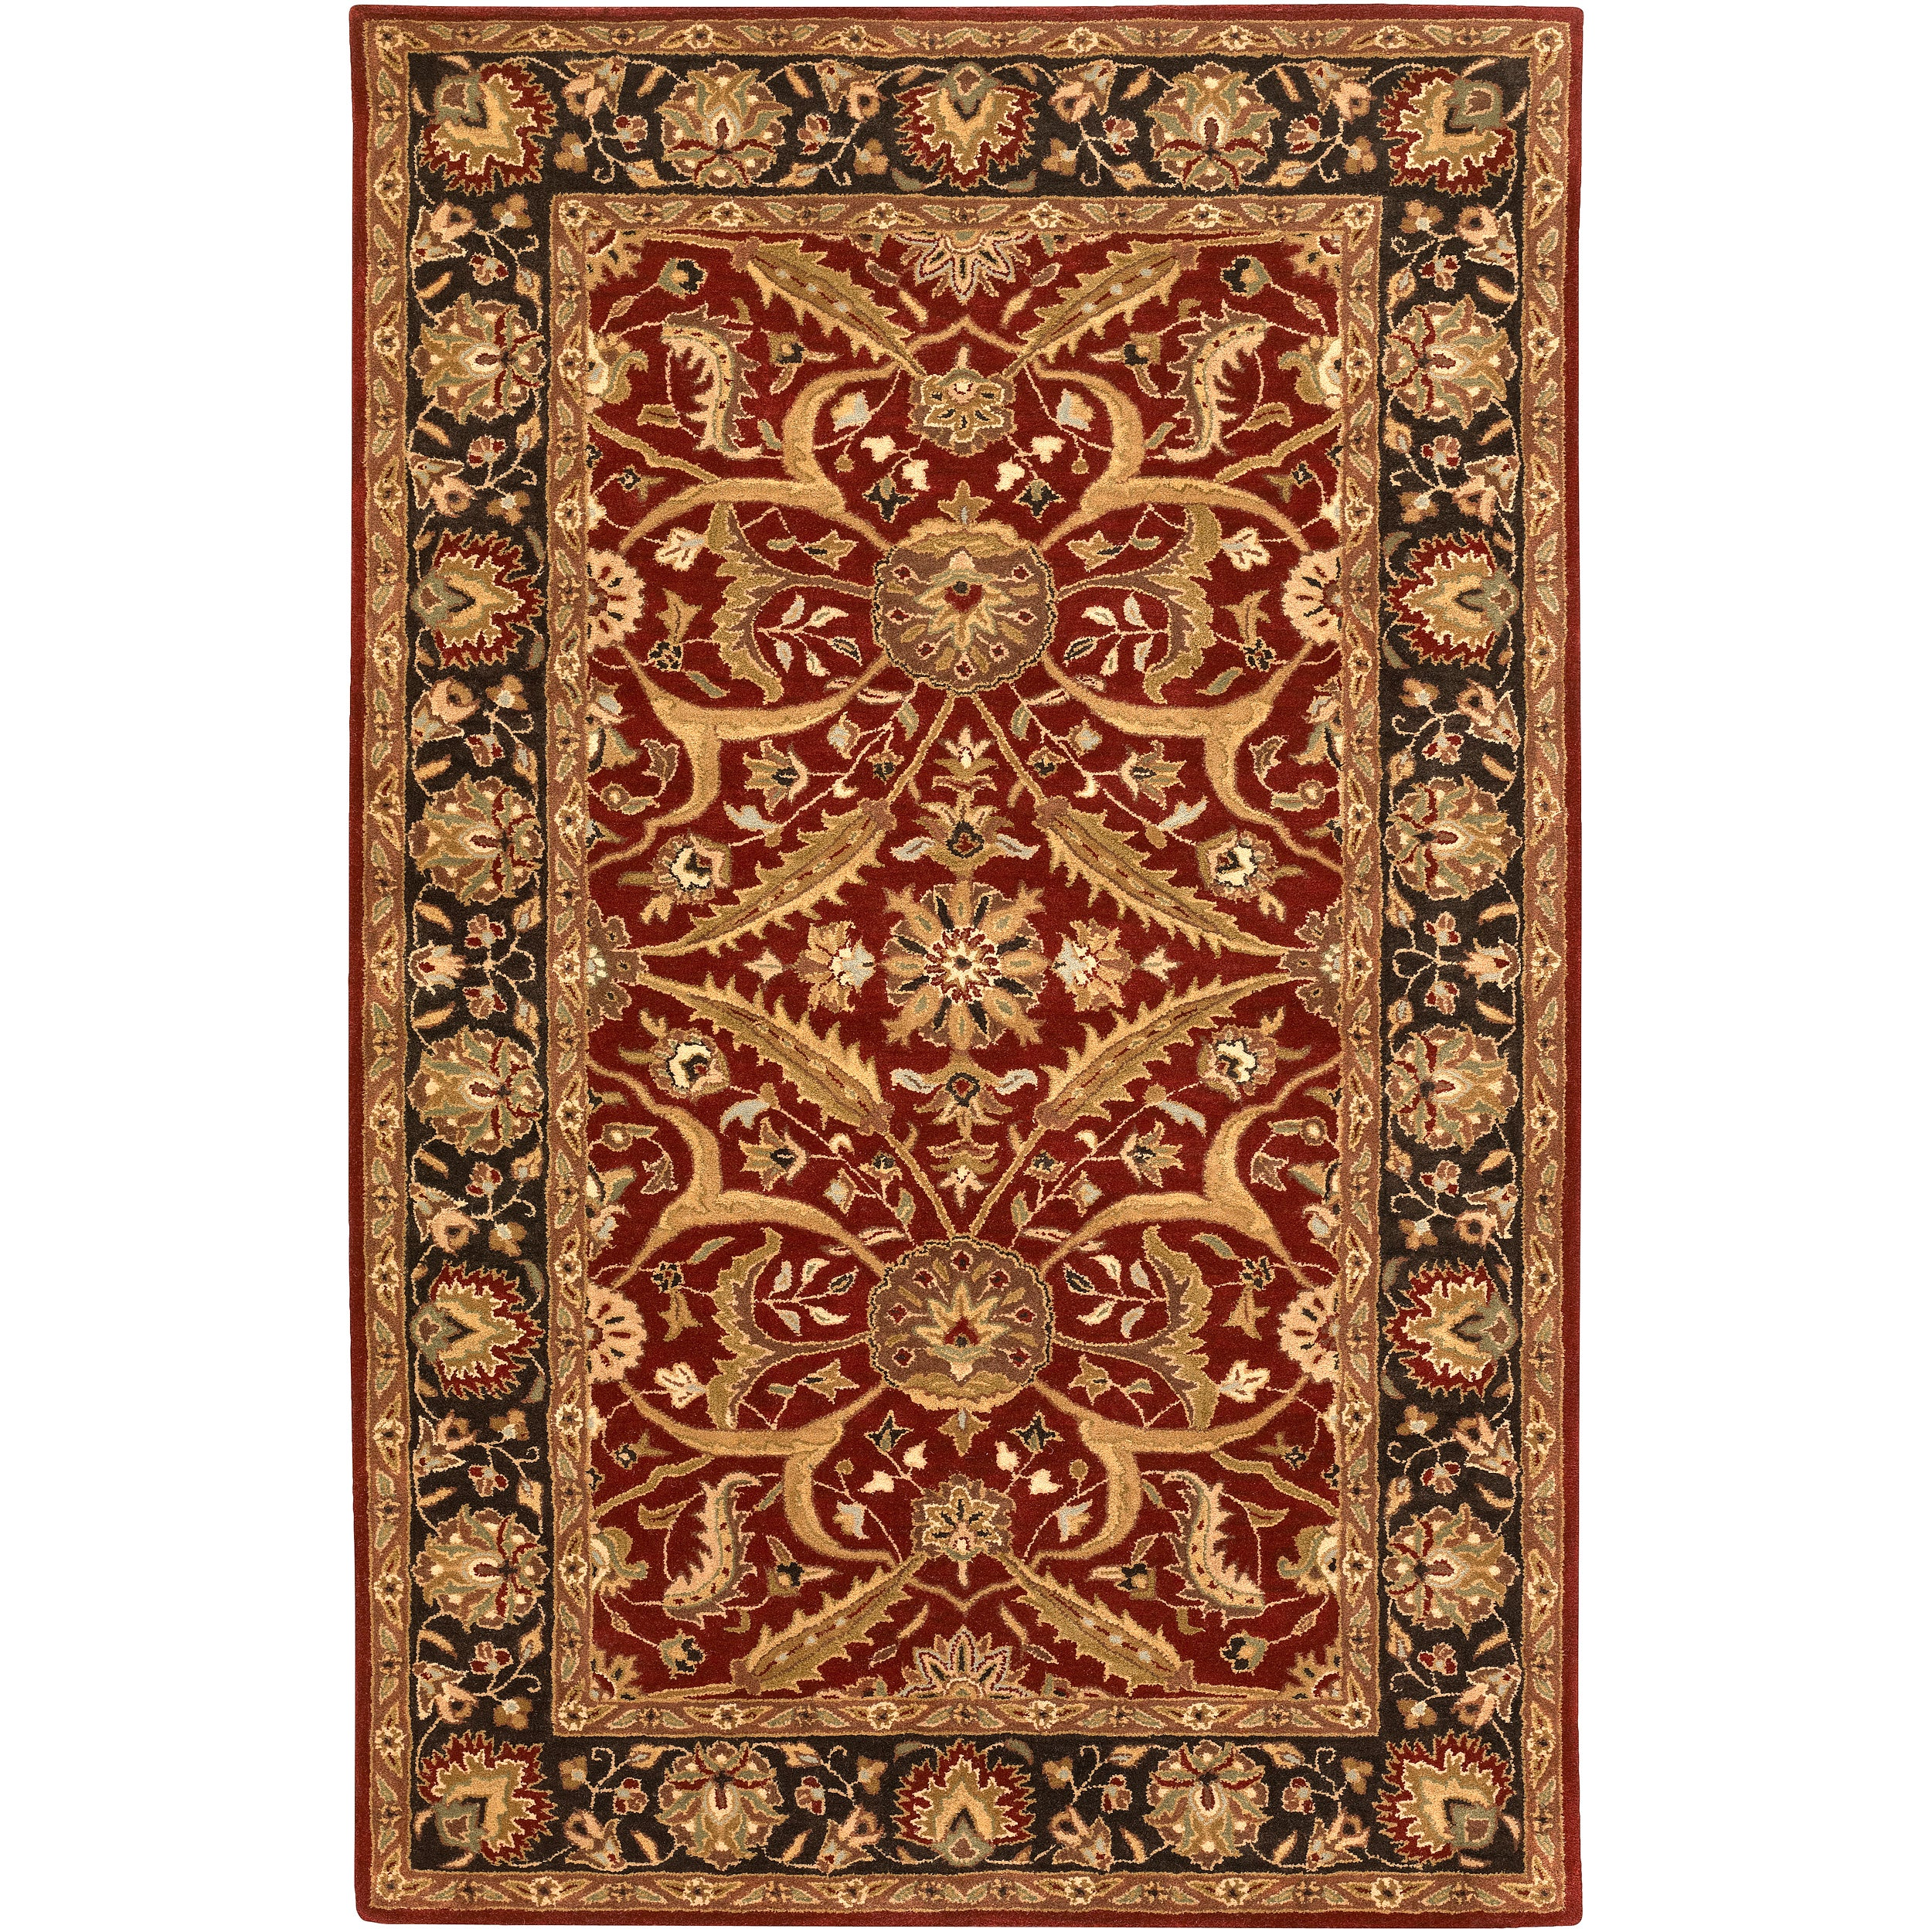 Hand-tufted Ancient Treasures Semi-worsted New Zealand Wool Rug (9' x 13')